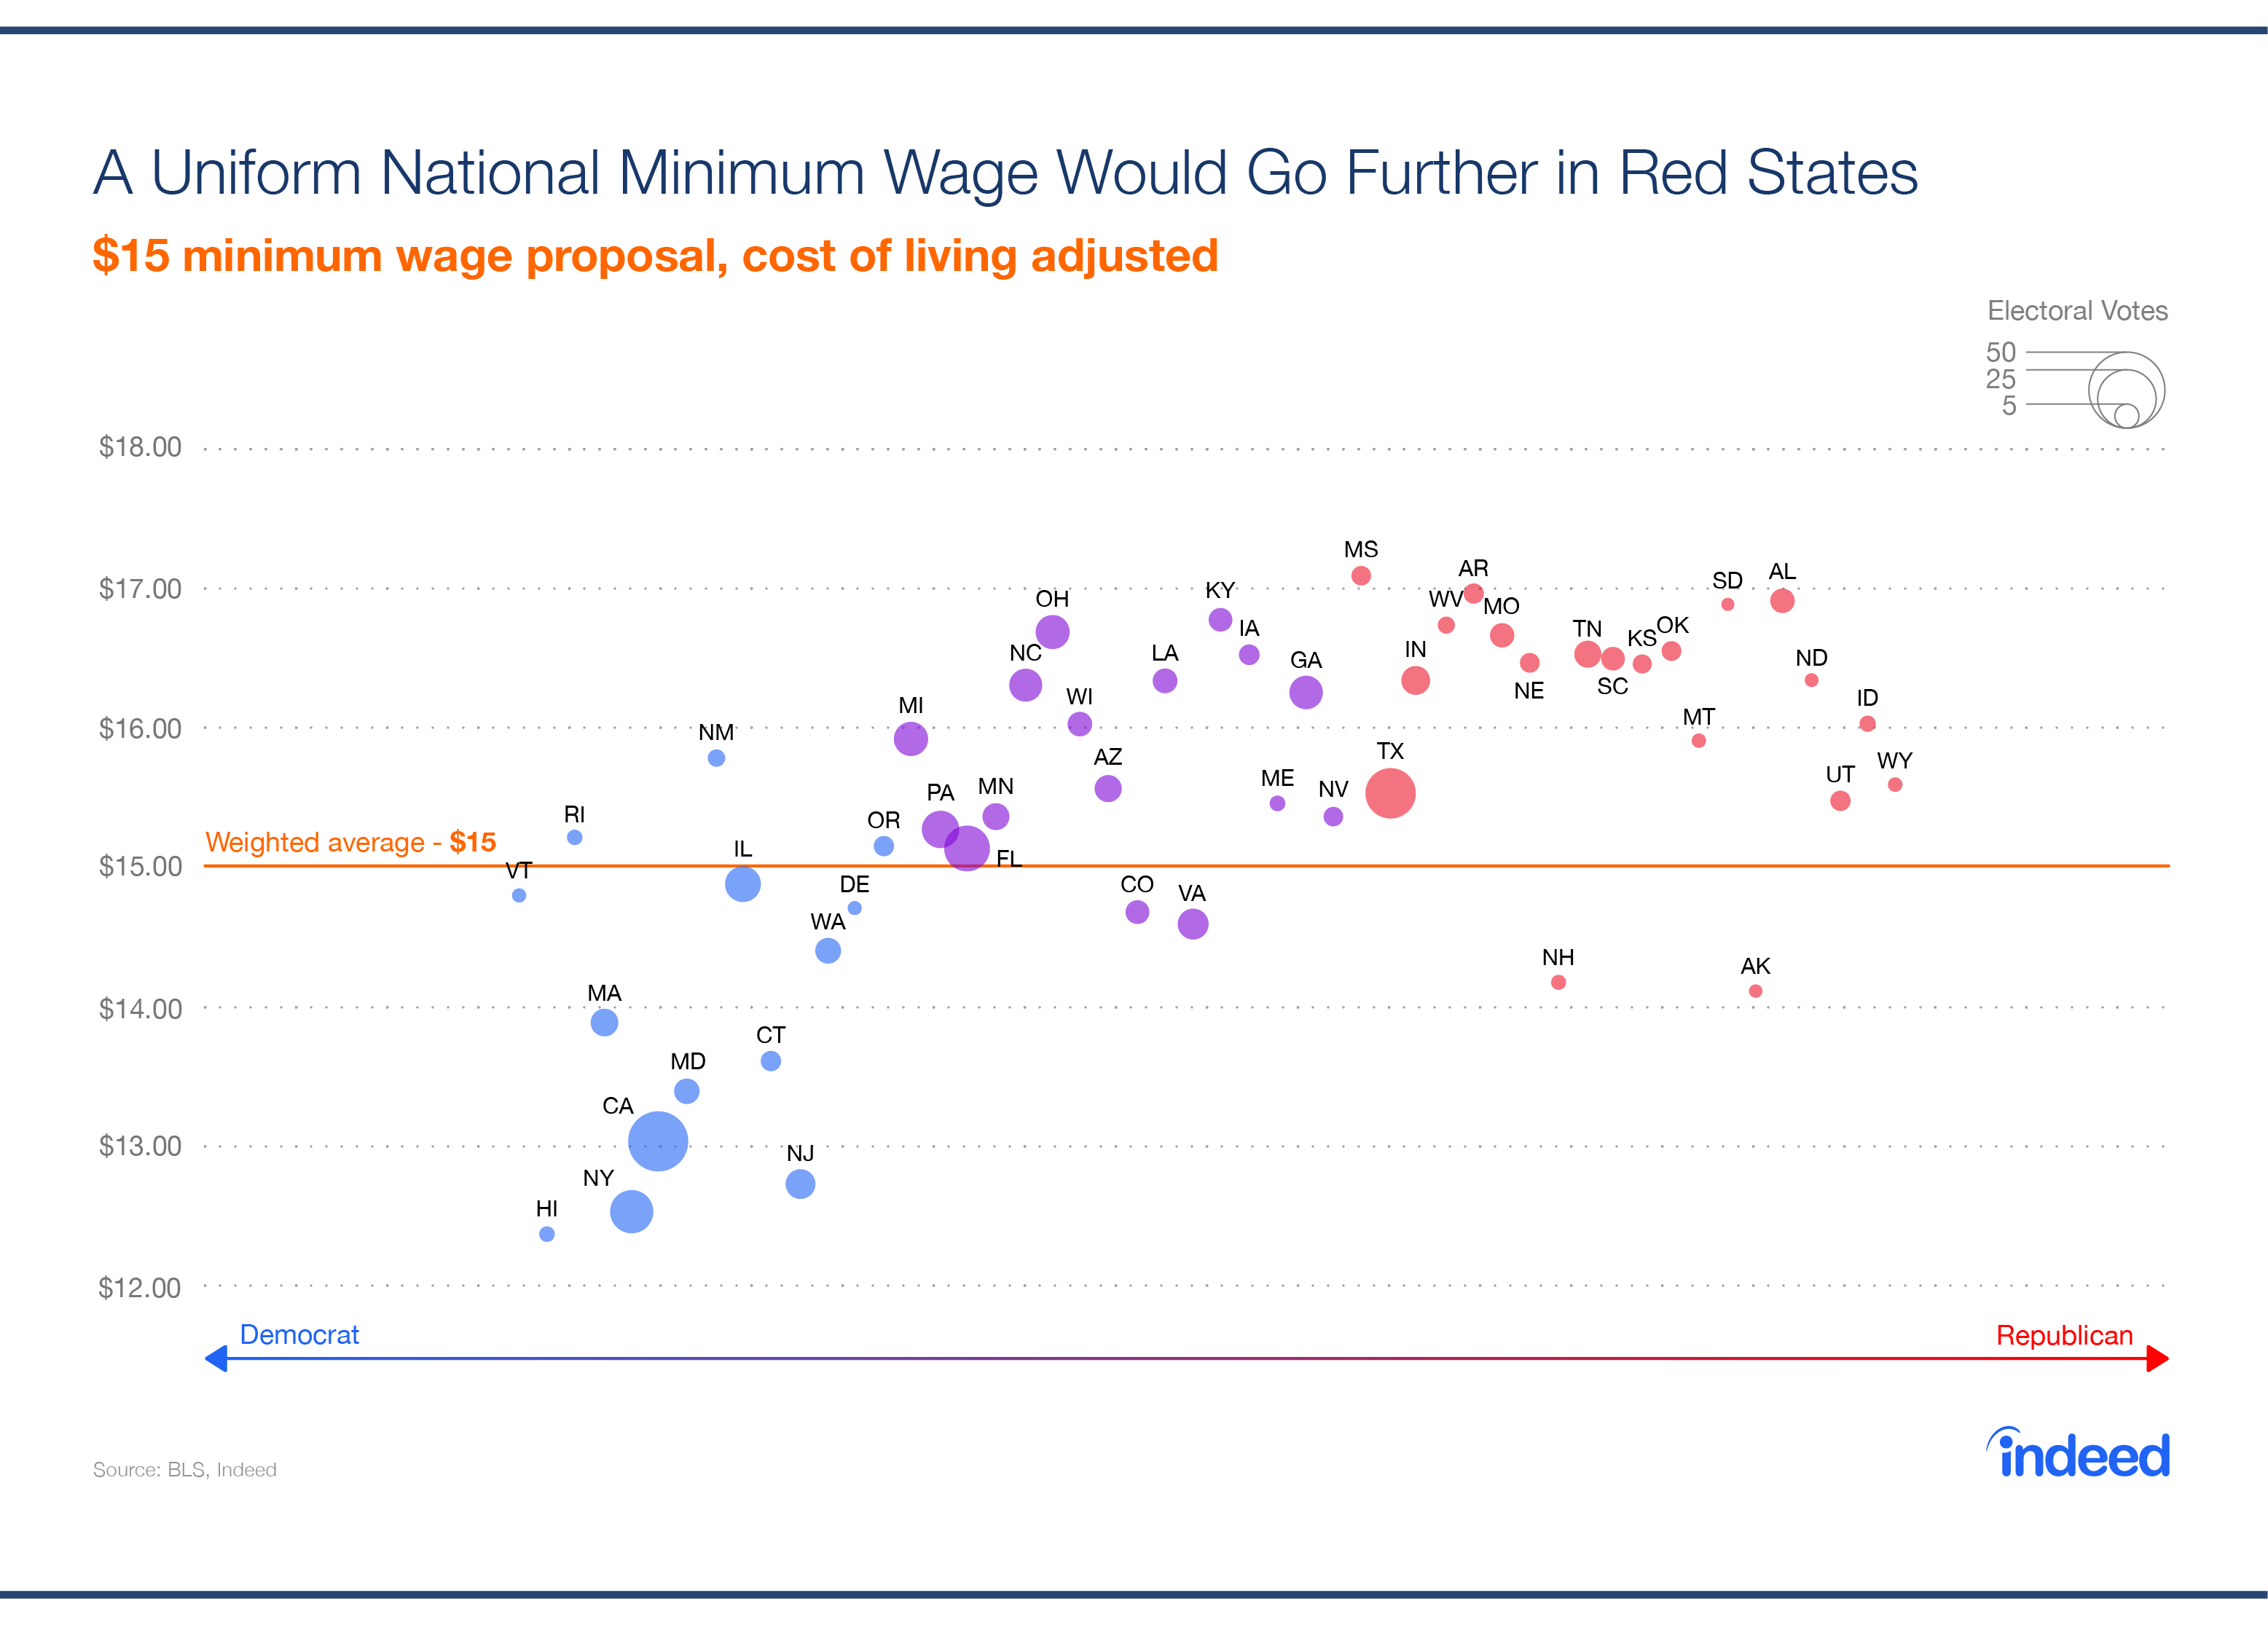 A uniform national minimum wage would go further in red states